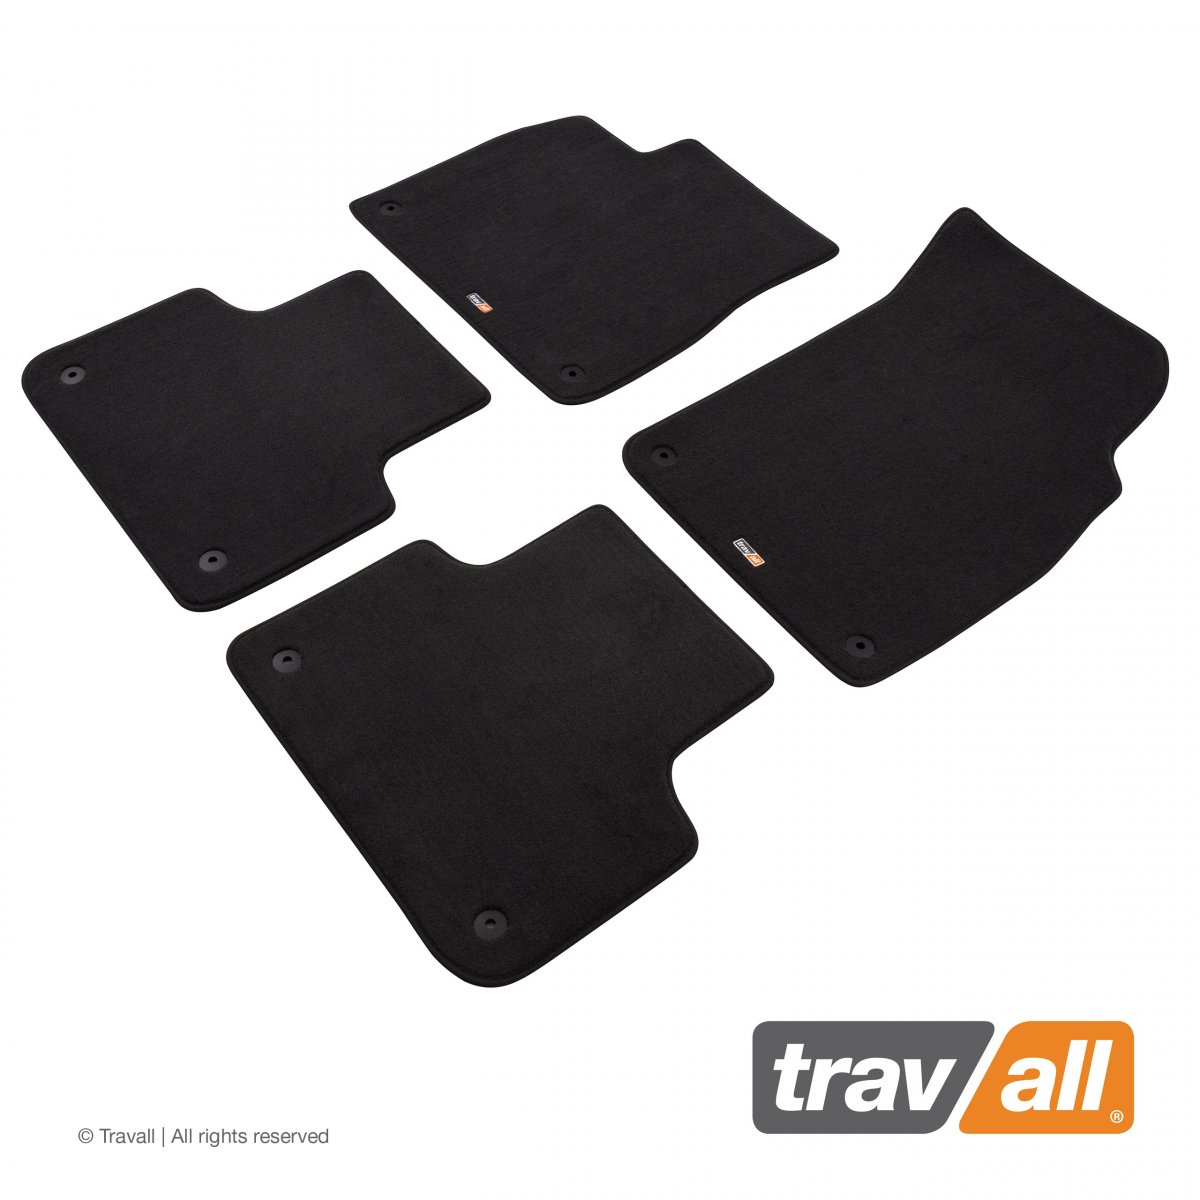 Travall® Mats Urban Edition [LHD] TCM1097DGL-Luxury car mat footwell protection for AUDI Q7/SQ7 (2015-)